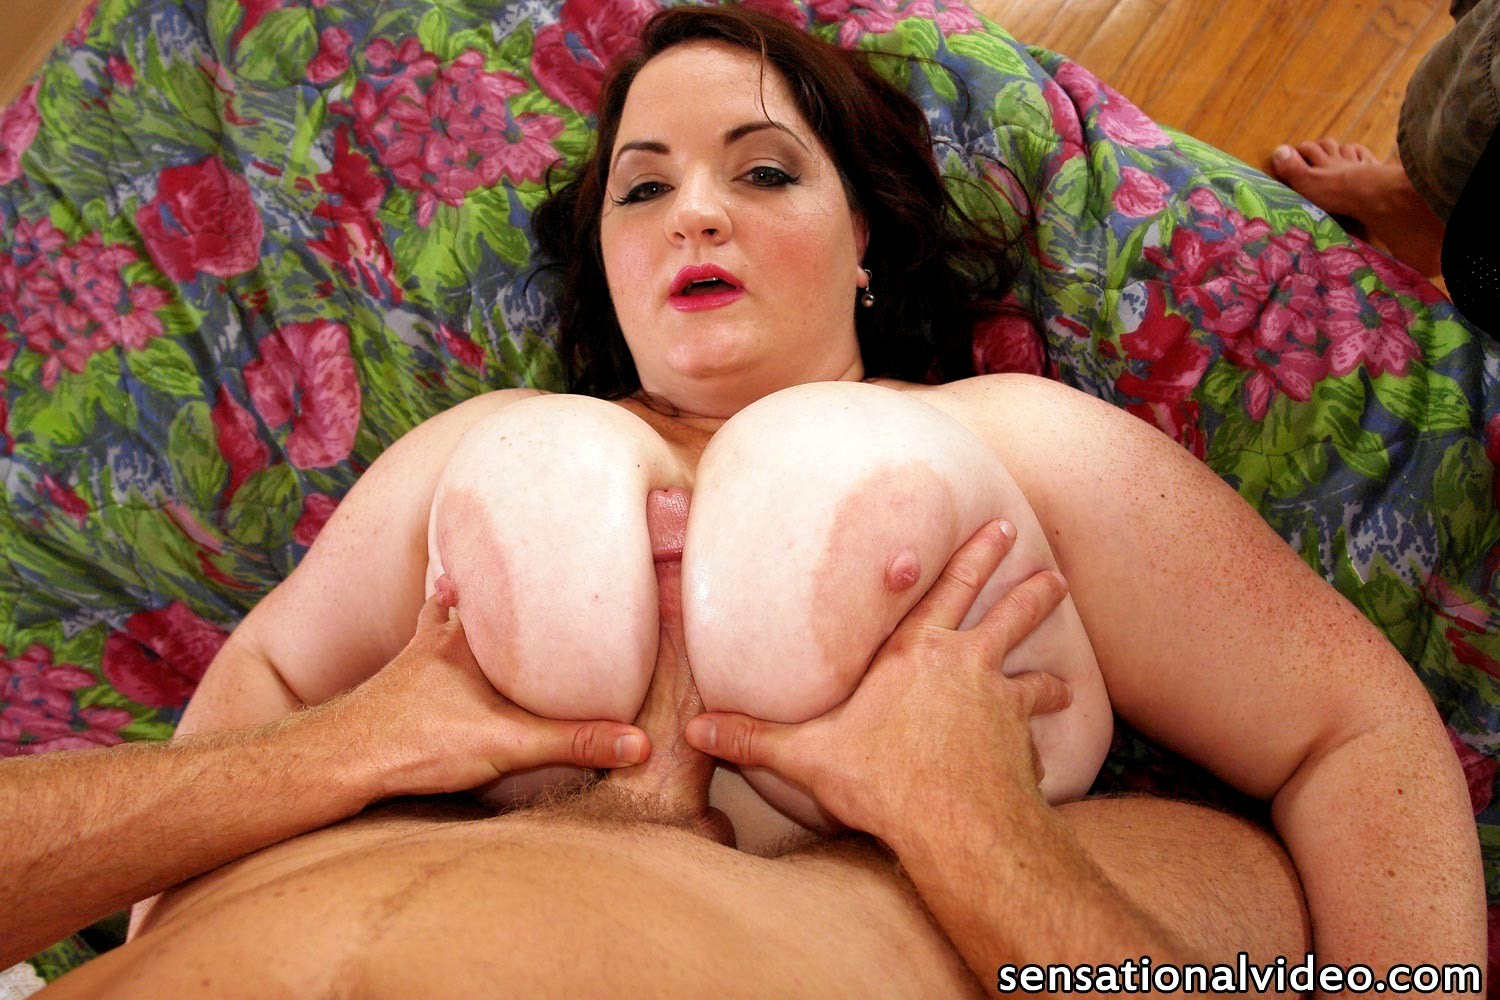 hayek-big-tits-middle-aged-woman-fucking-girl-sexy-boobs